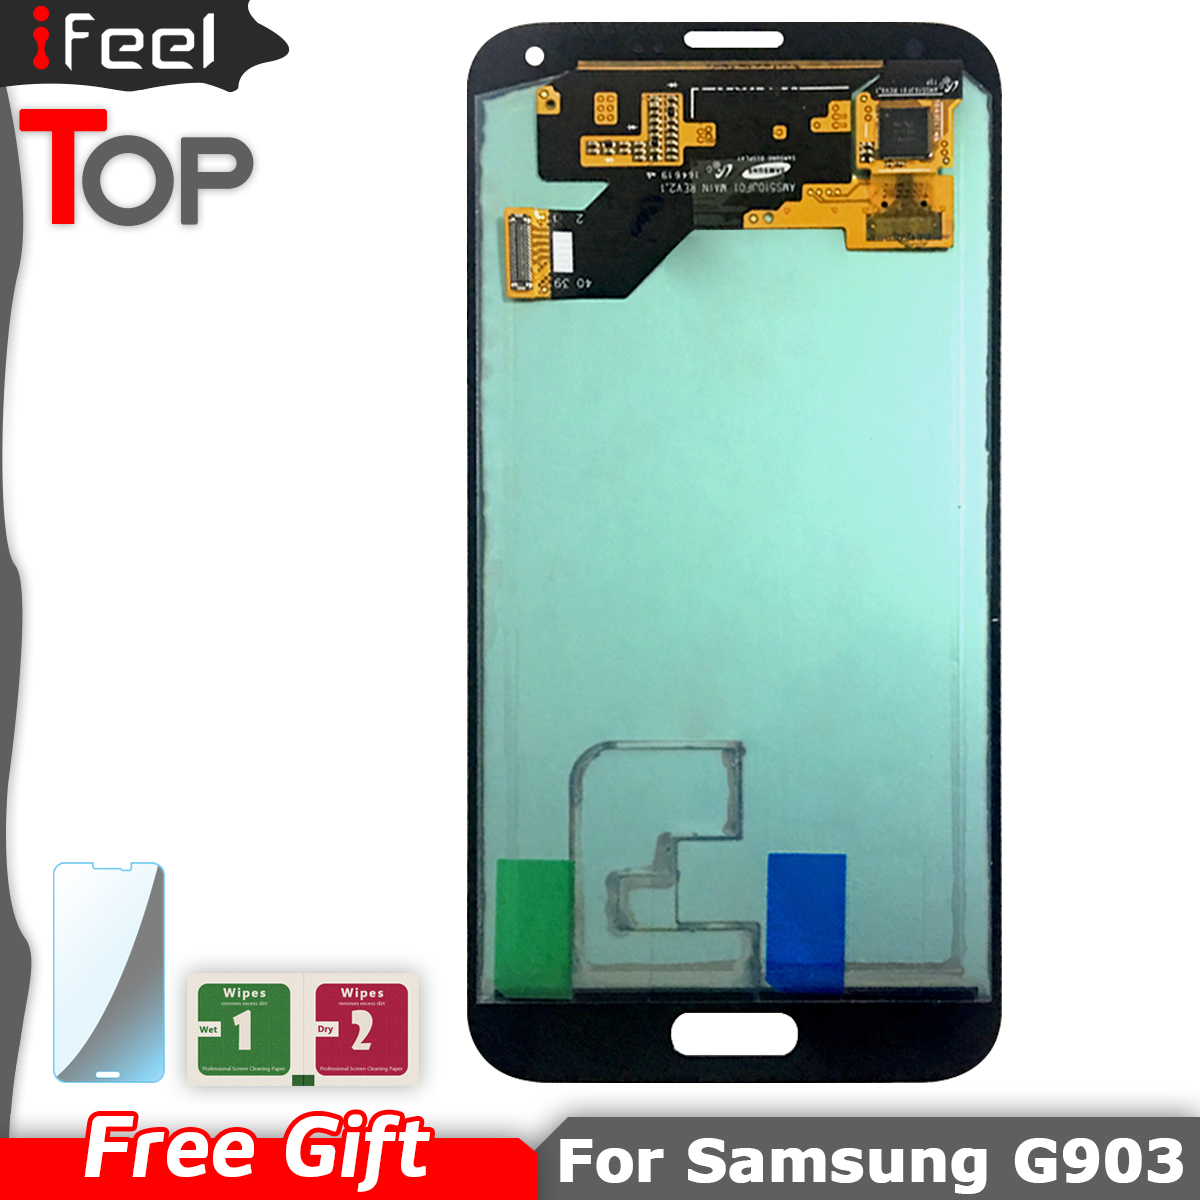 100% Tested LCD For Samsung Galaxy S5 NEO SM-G903M G903 G903F G903M LCD Display Touch Screen Digitizer Assembly Super AMOLED100% Tested LCD For Samsung Galaxy S5 NEO SM-G903M G903 G903F G903M LCD Display Touch Screen Digitizer Assembly Super AMOLED